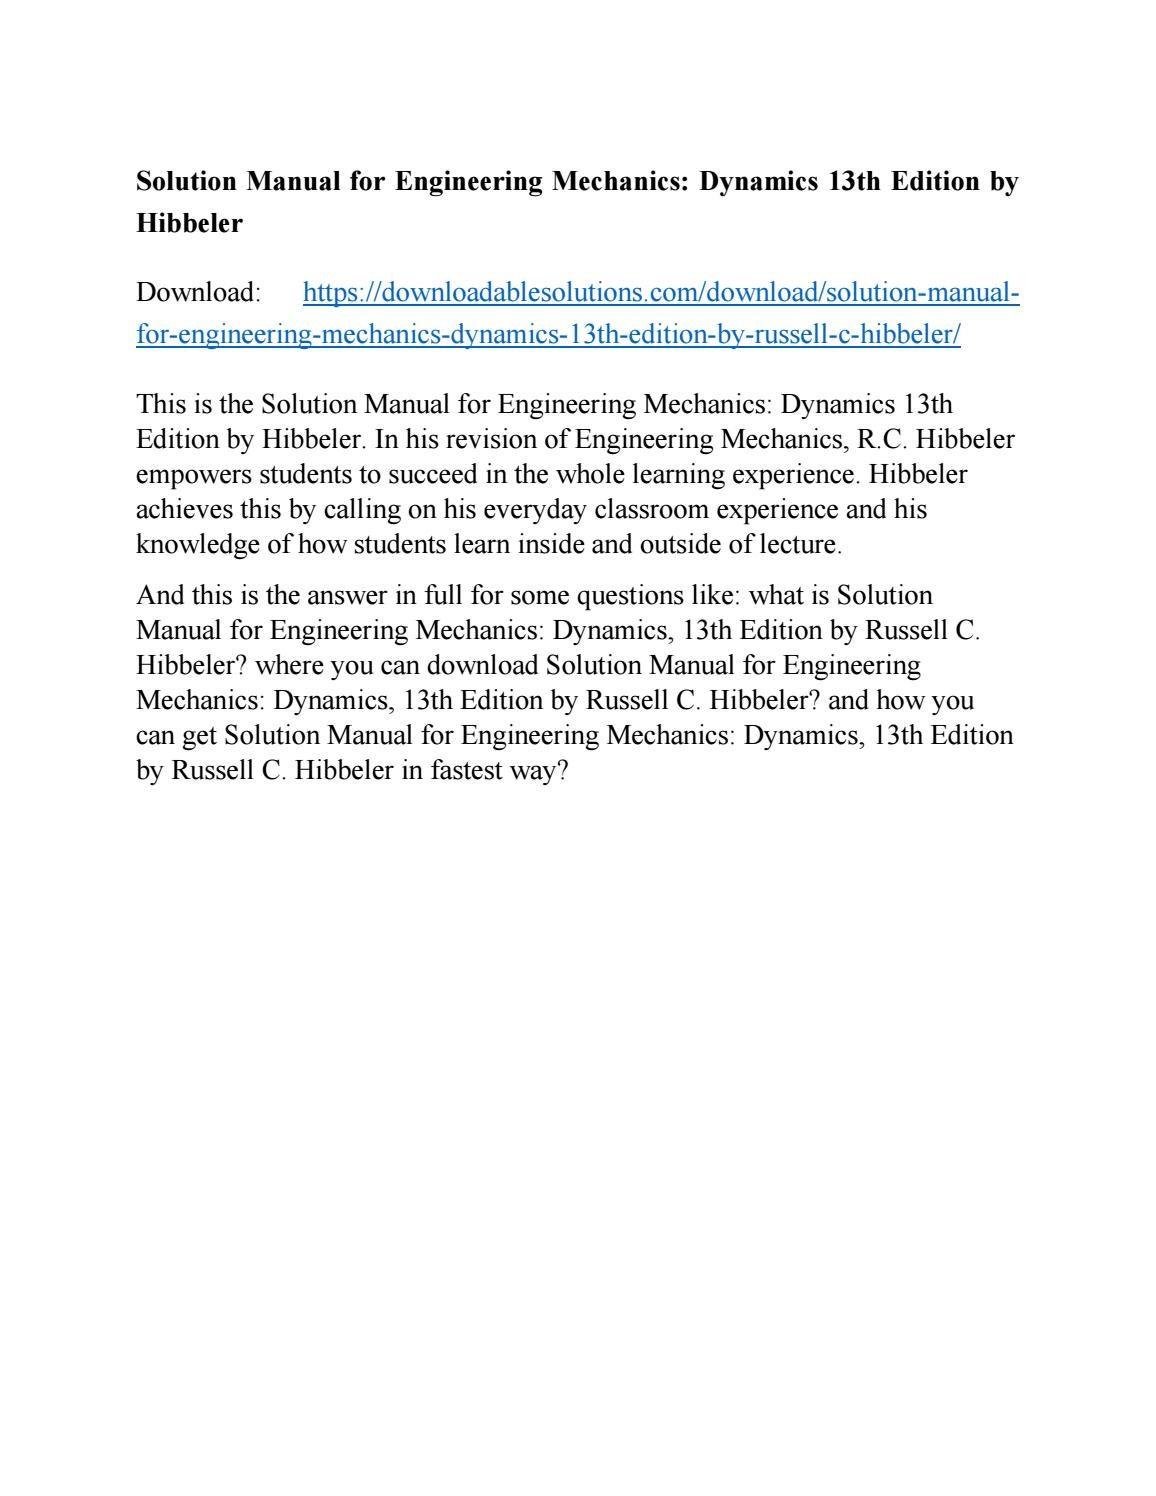 Solution Manual for Engineering Mechanics: Dynamics 13th Edition by Hibbeler  by java30 - issuu